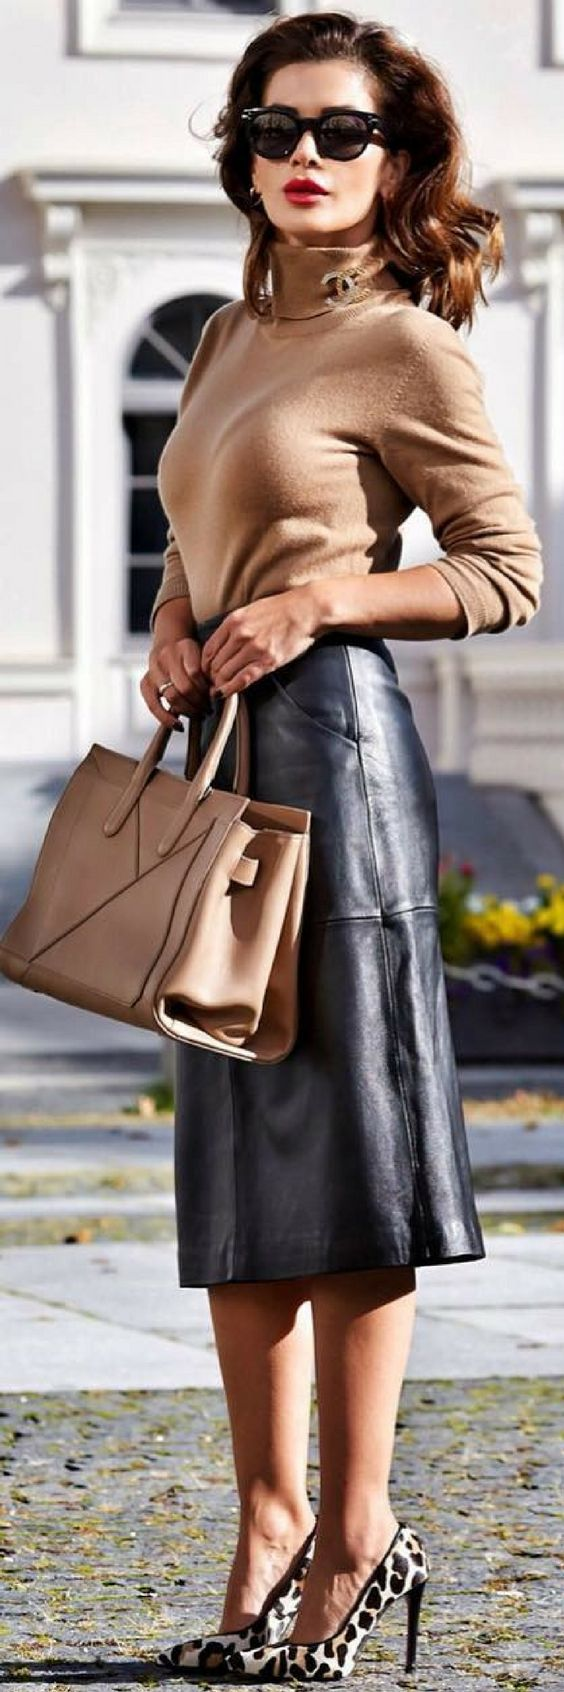 This Is The Go To Skirt For A Splendid Fall Look - How To Style By Fusun Lindner http://ecstasymodels.blog/2017/10/07/splendid-fall-look-style-fusun-lindner/Fall Outfit Idea